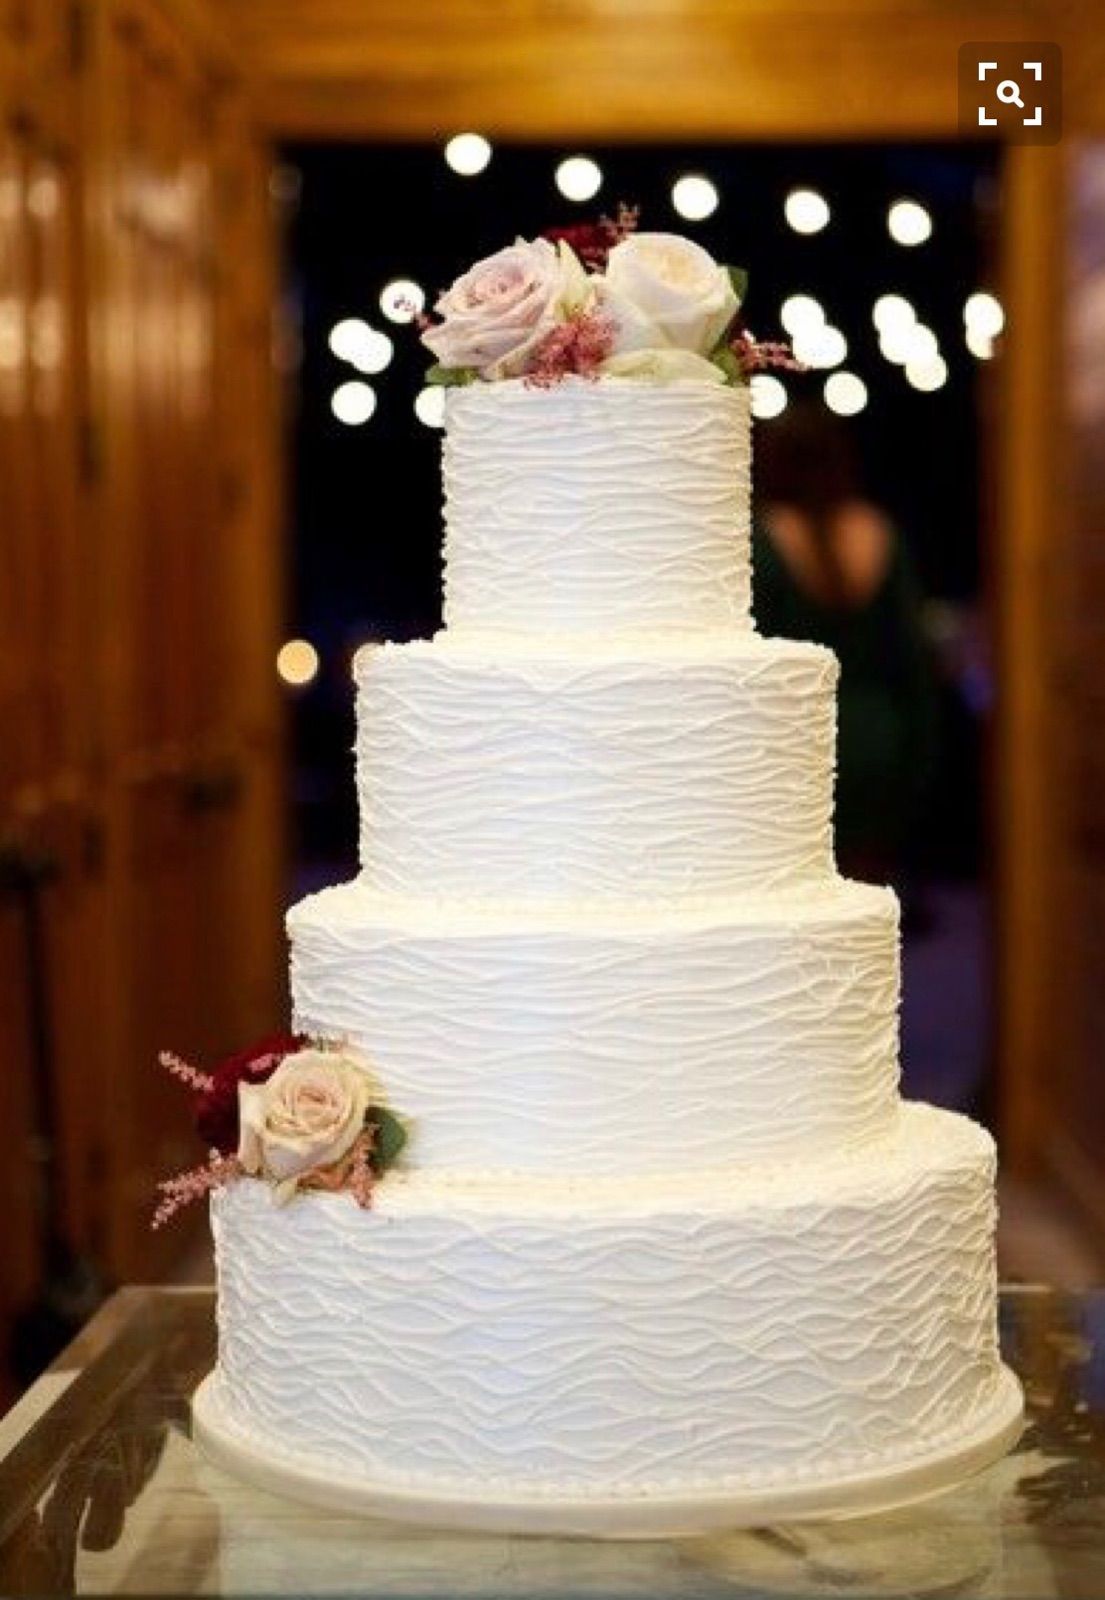 Pin by Josie on Cakes | Pinterest | Wedding cake, Wedding and Cake ...